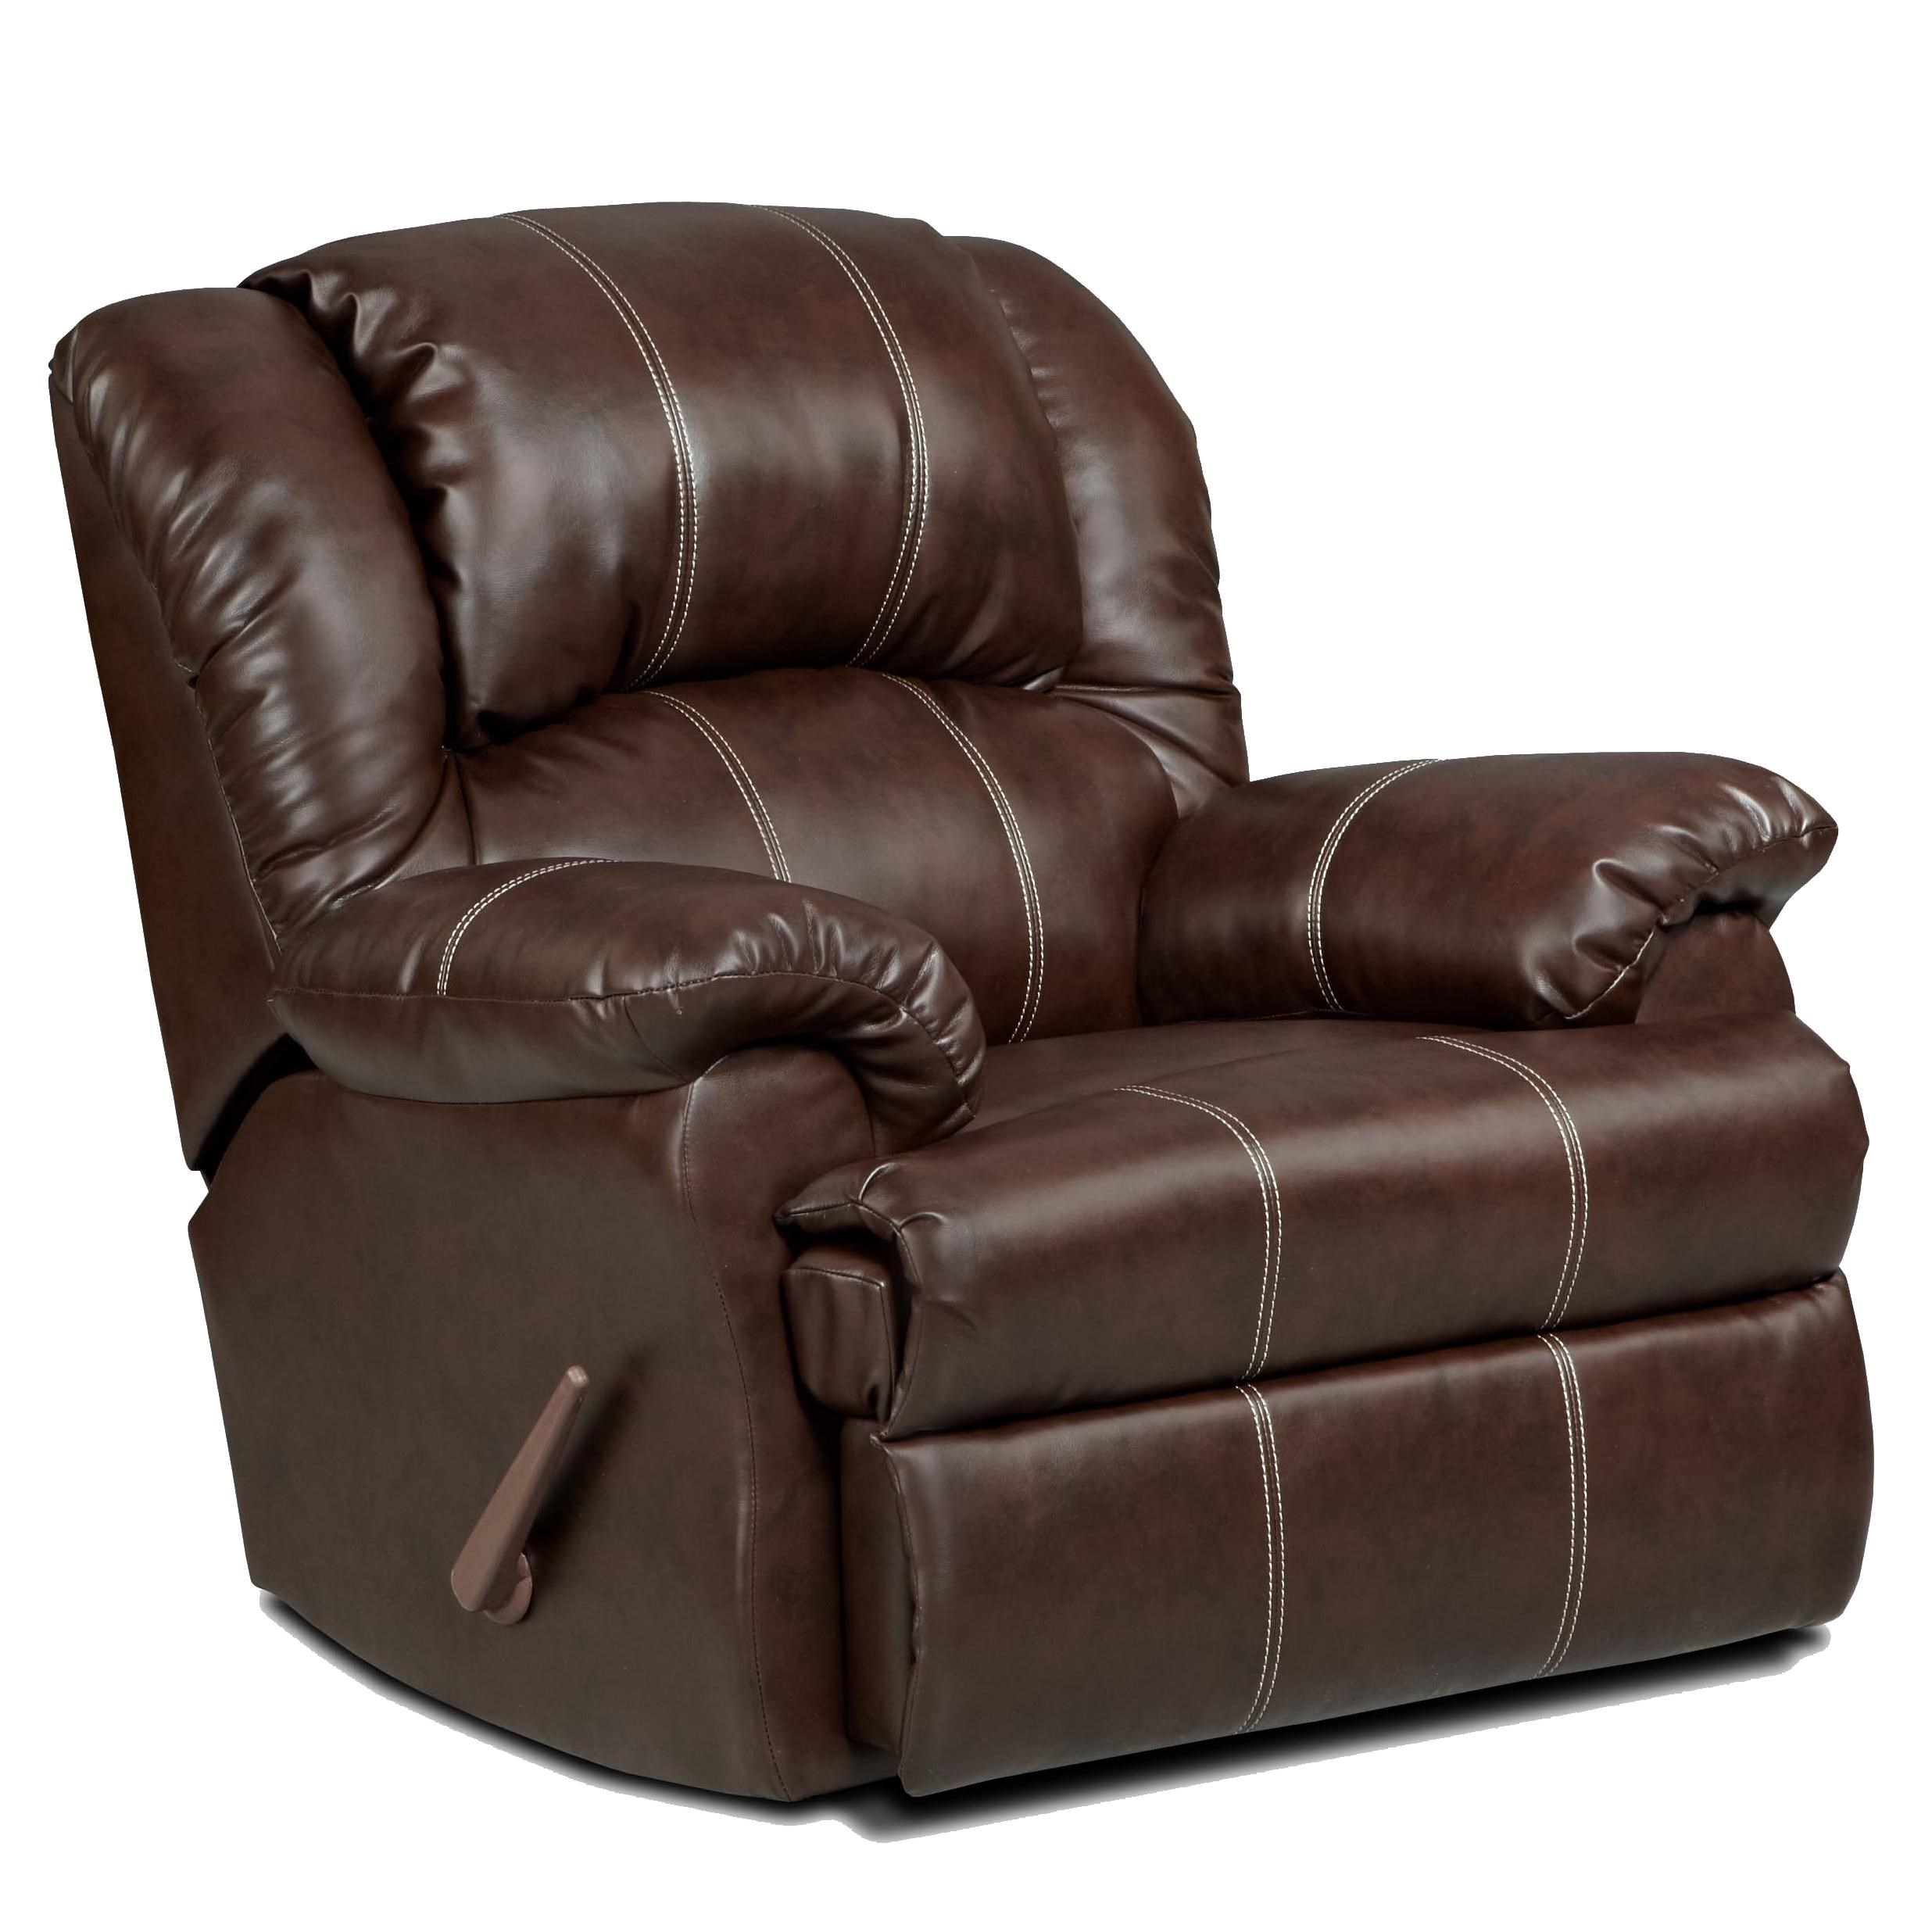 1000 Chaises Affordable Furniture 1000 Rocker Recliner With Chaise Seating